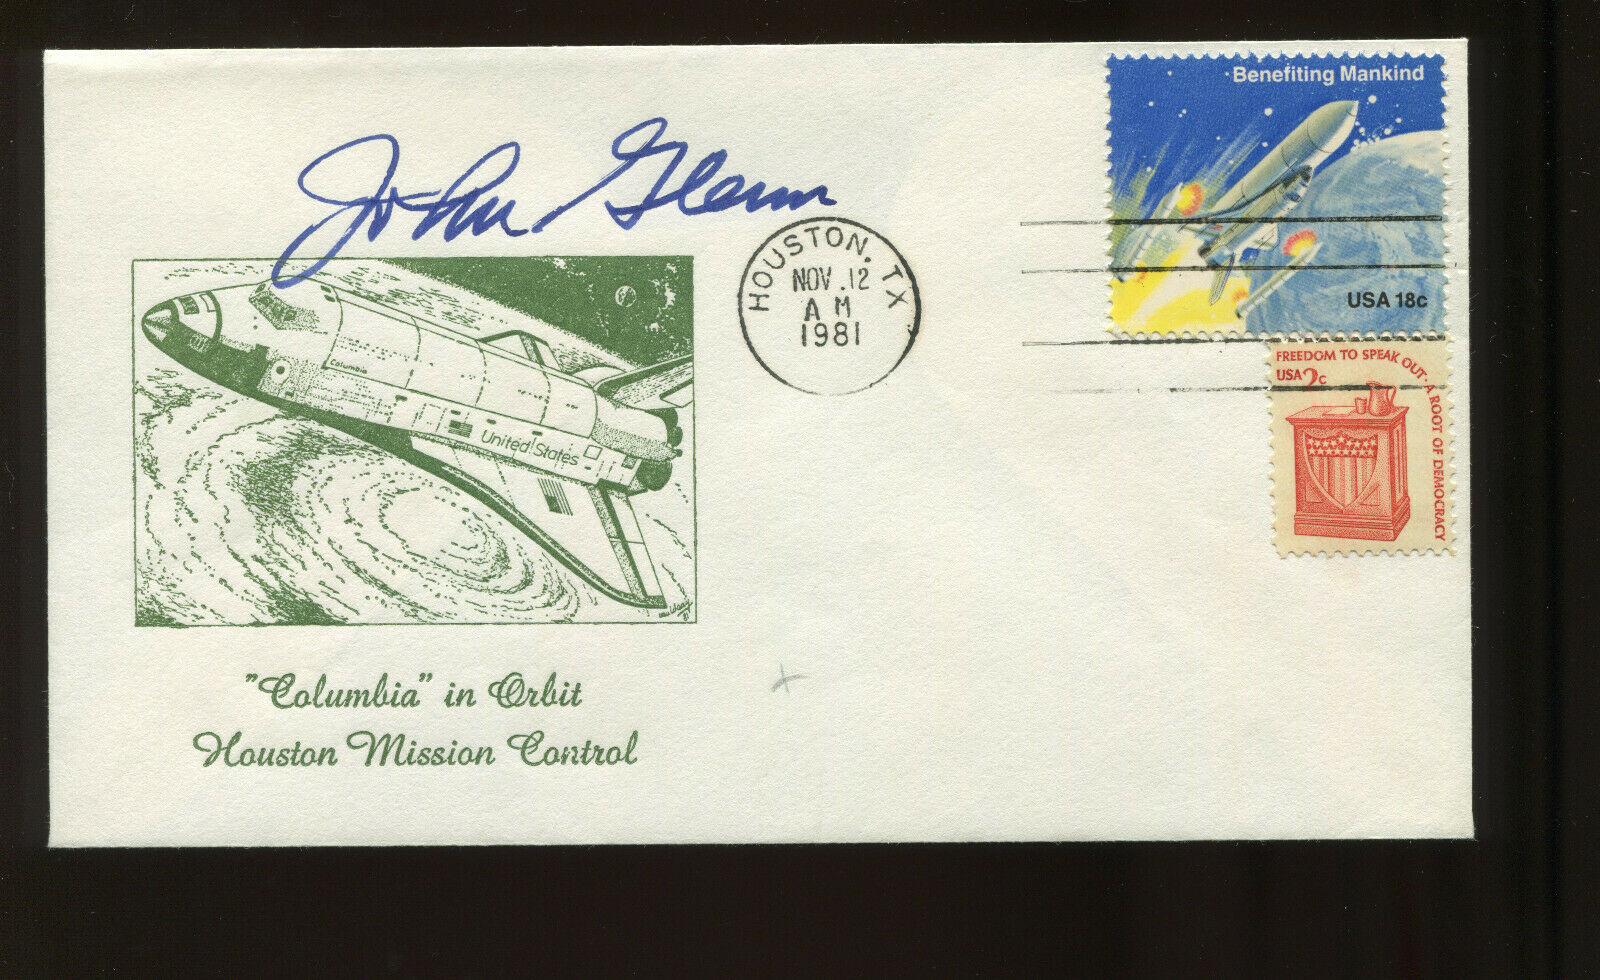 s l1600 - Astronaut JOHN GLENN Signed on NOVEMBER 12, 1981 Columbia STS-2 Launch DAY Cover